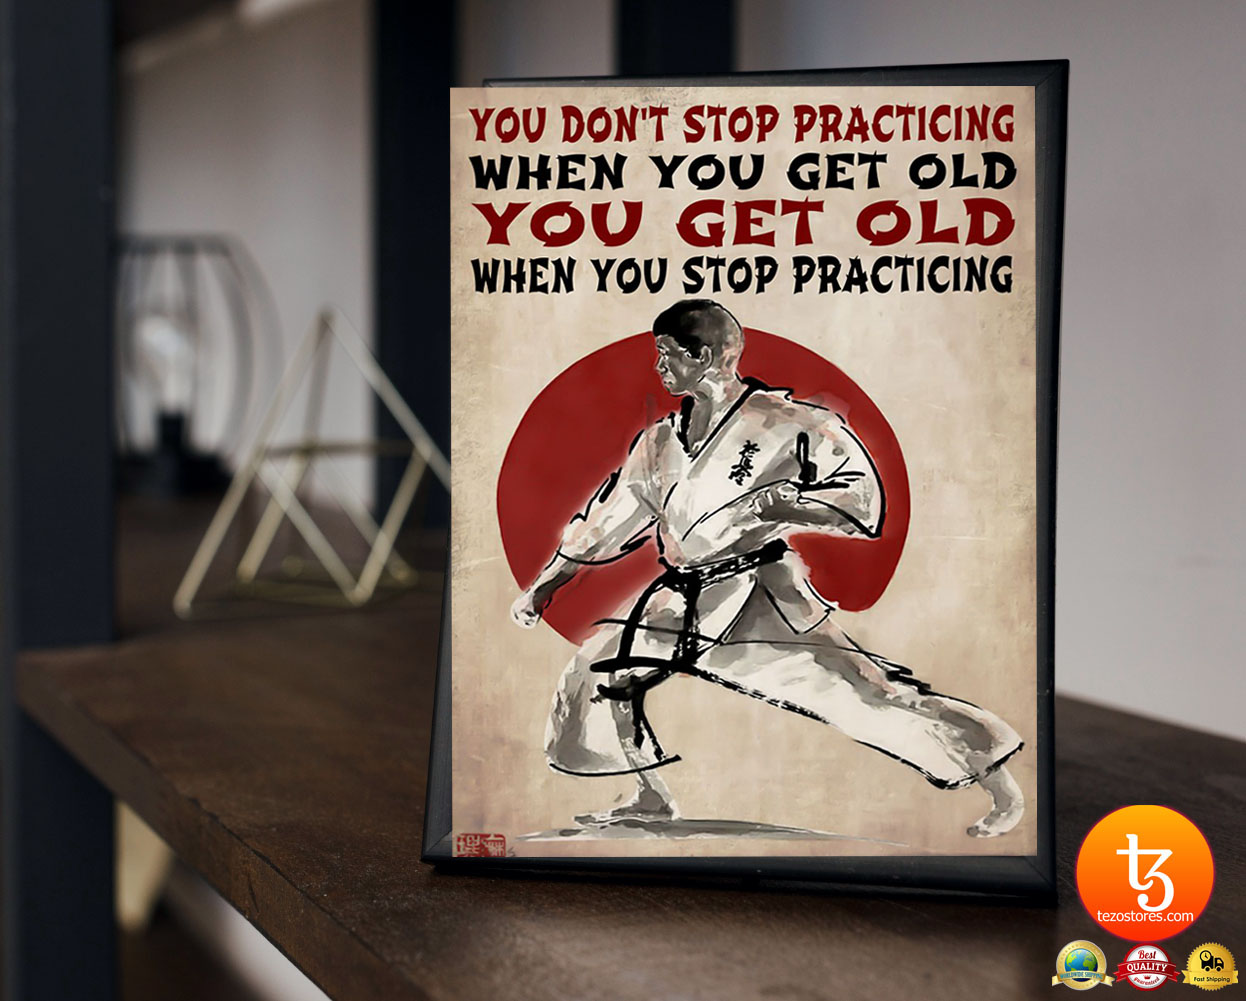 Martial arts You don't stop practicing when you get old poster 2